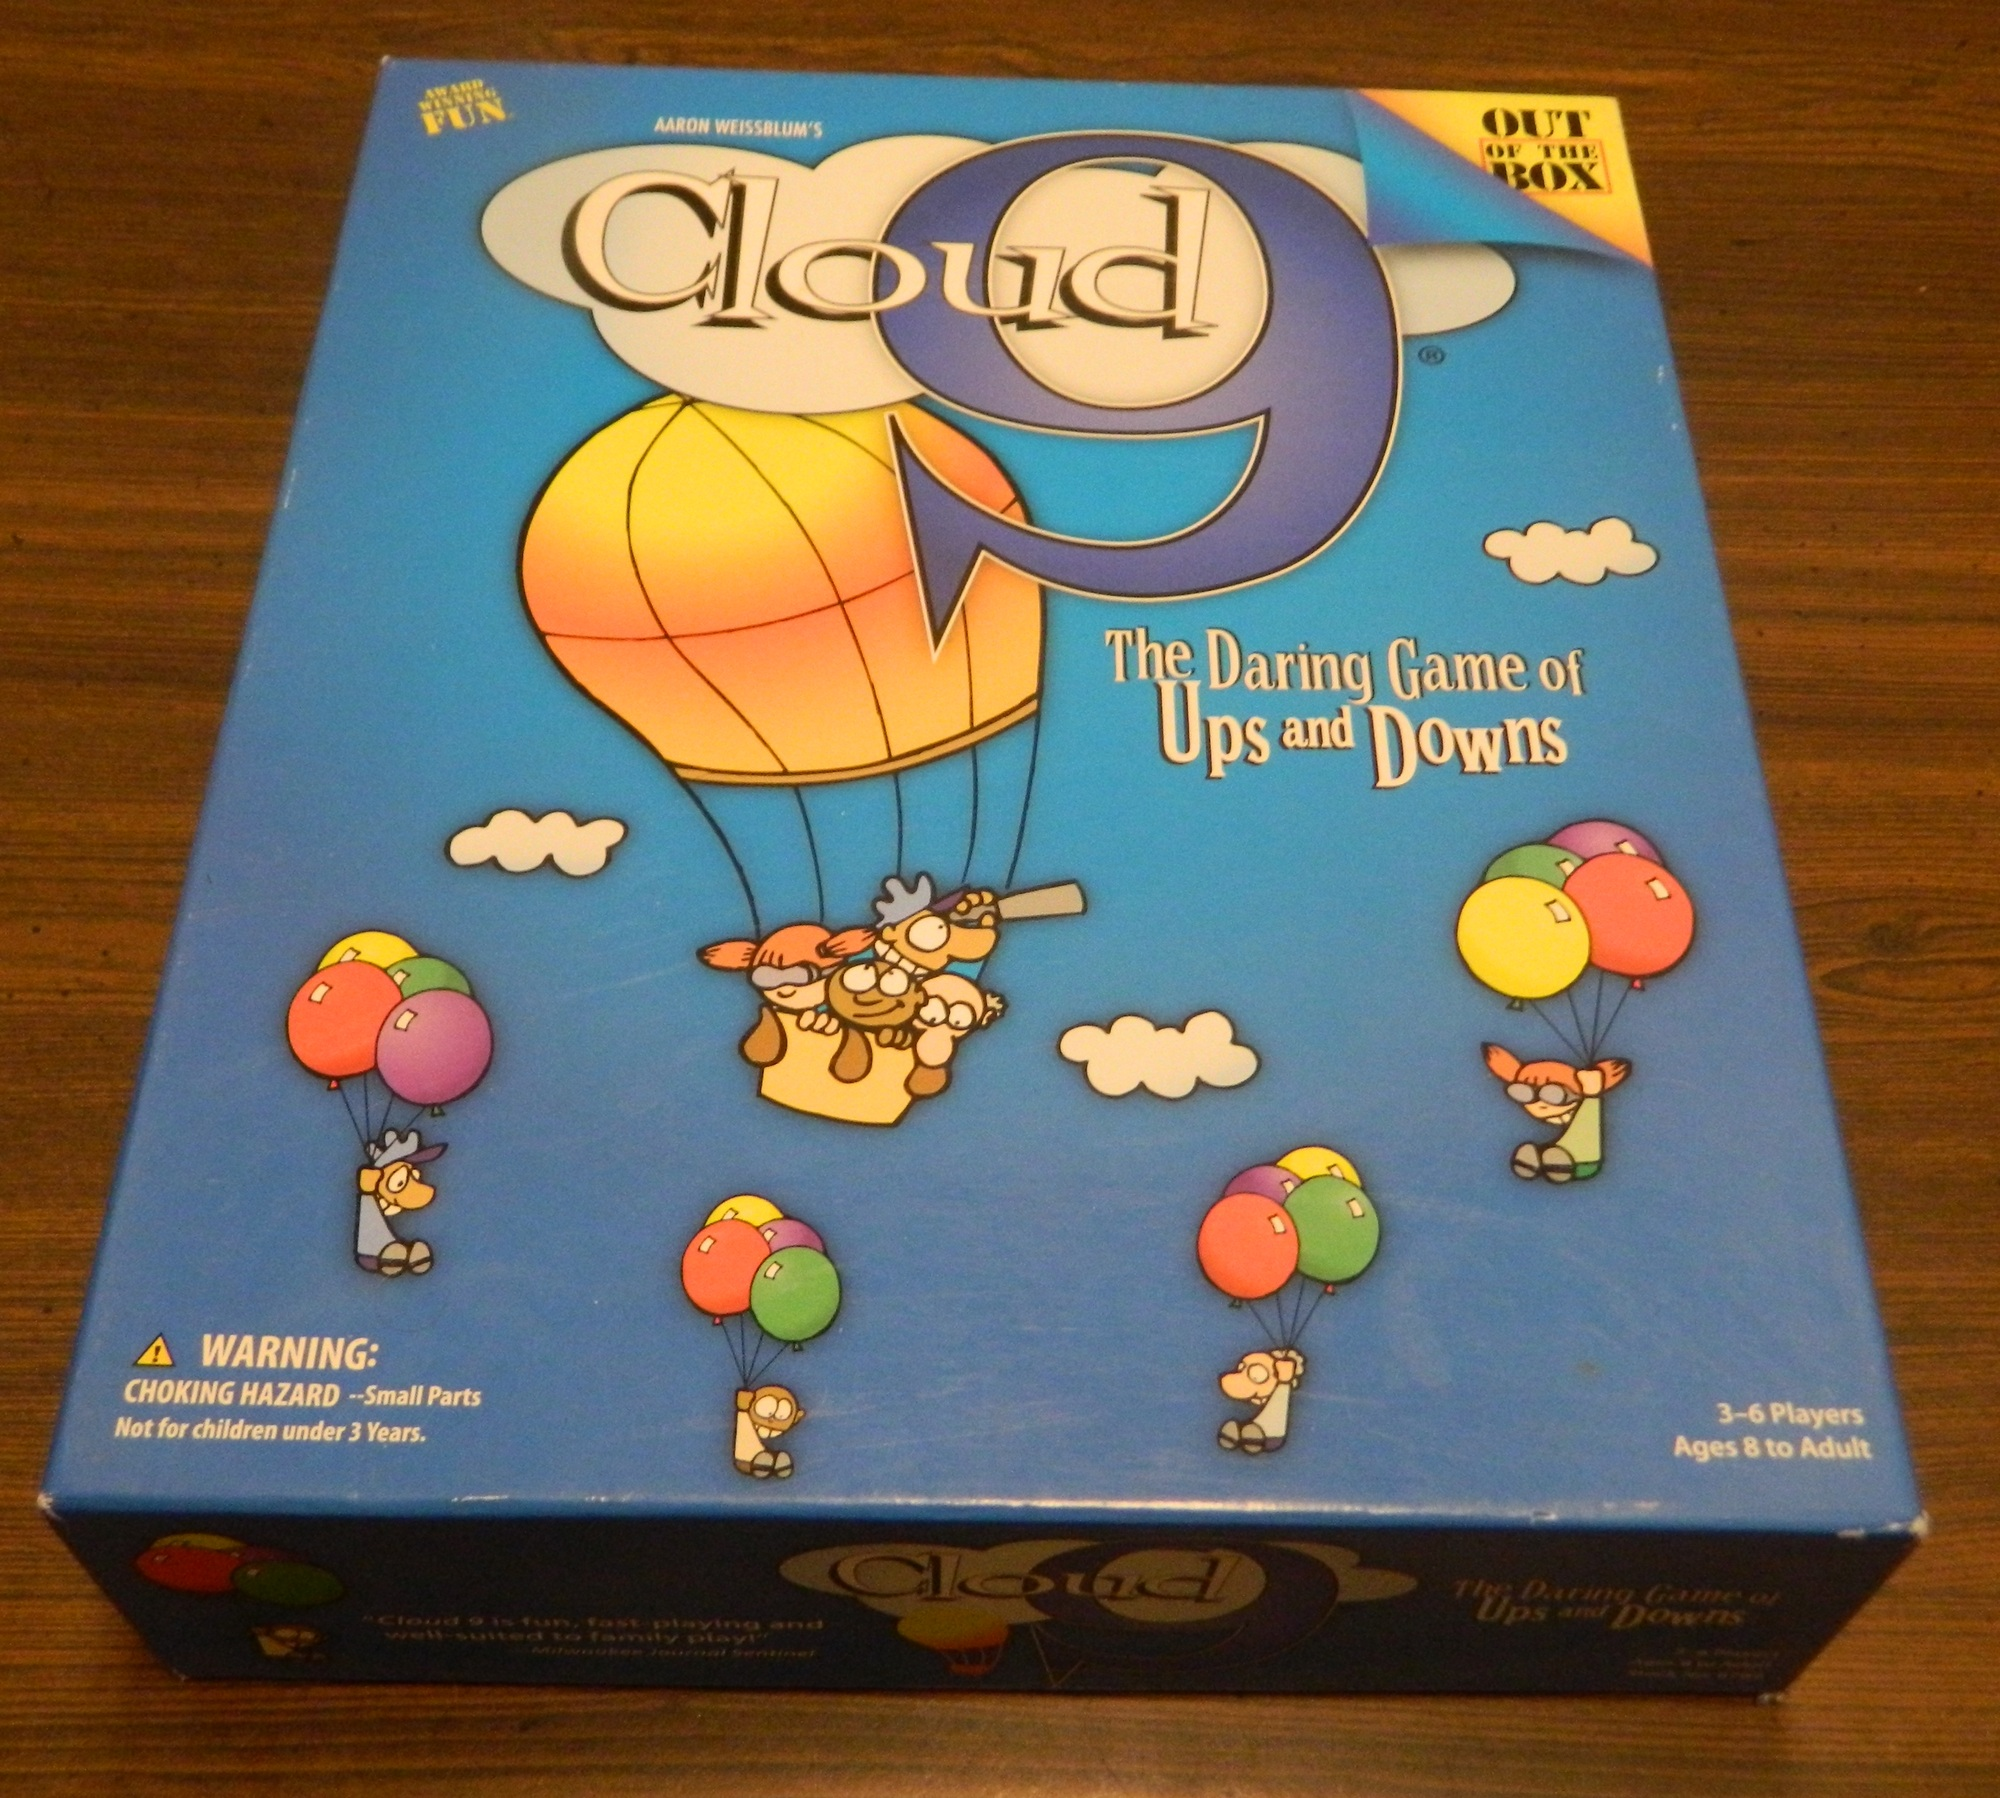 Box for Cloud 9